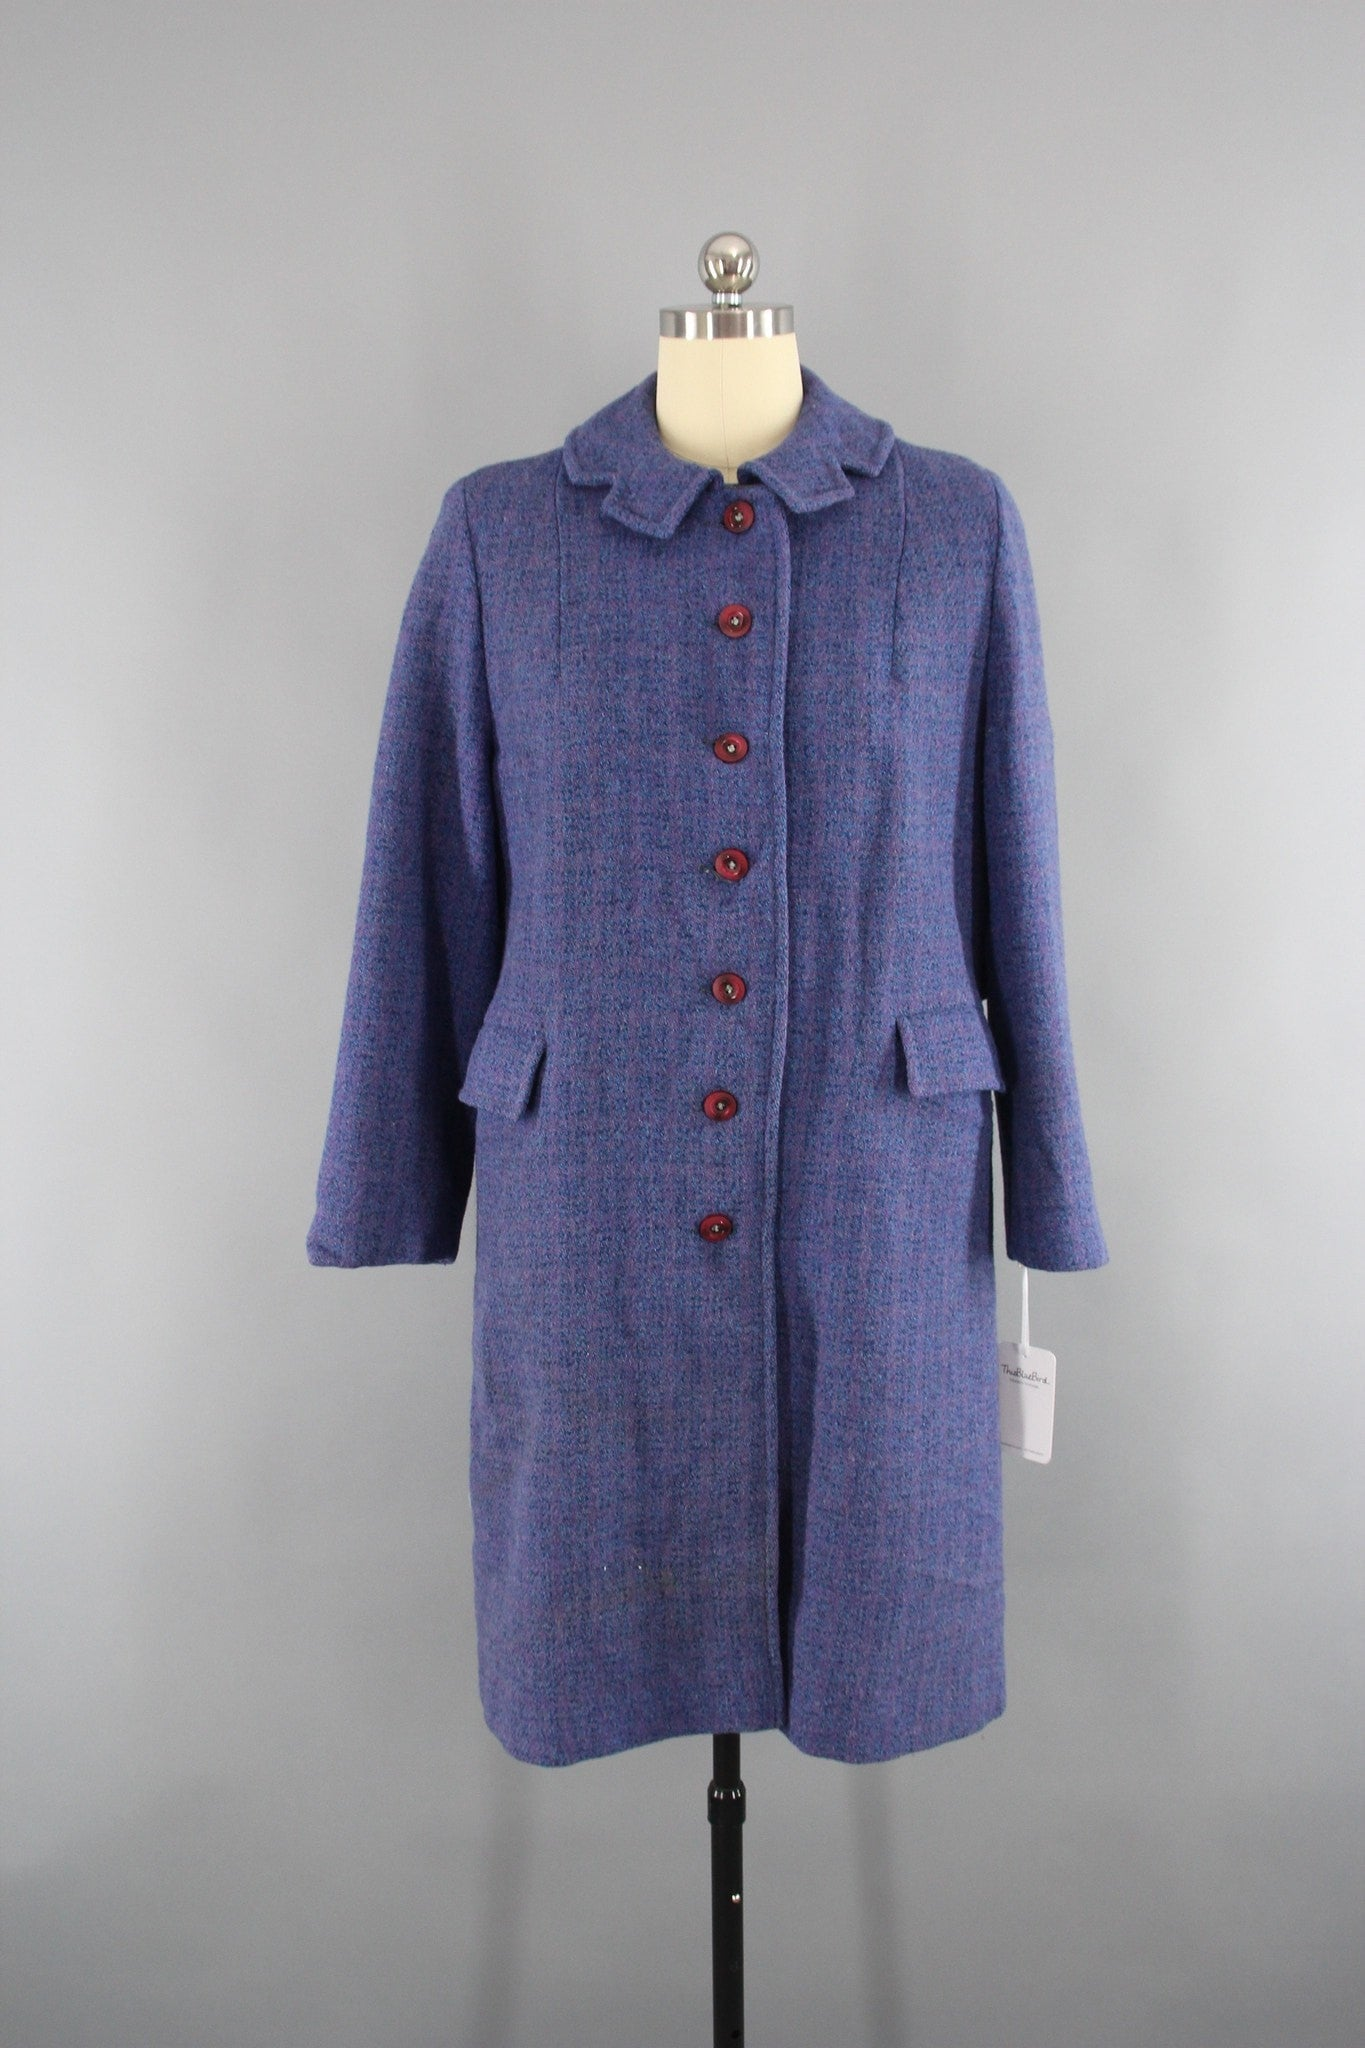 Vintage 1950s Periwinkle Blue Harris Tweed Wool Coat Outerwear ThisBlueBird